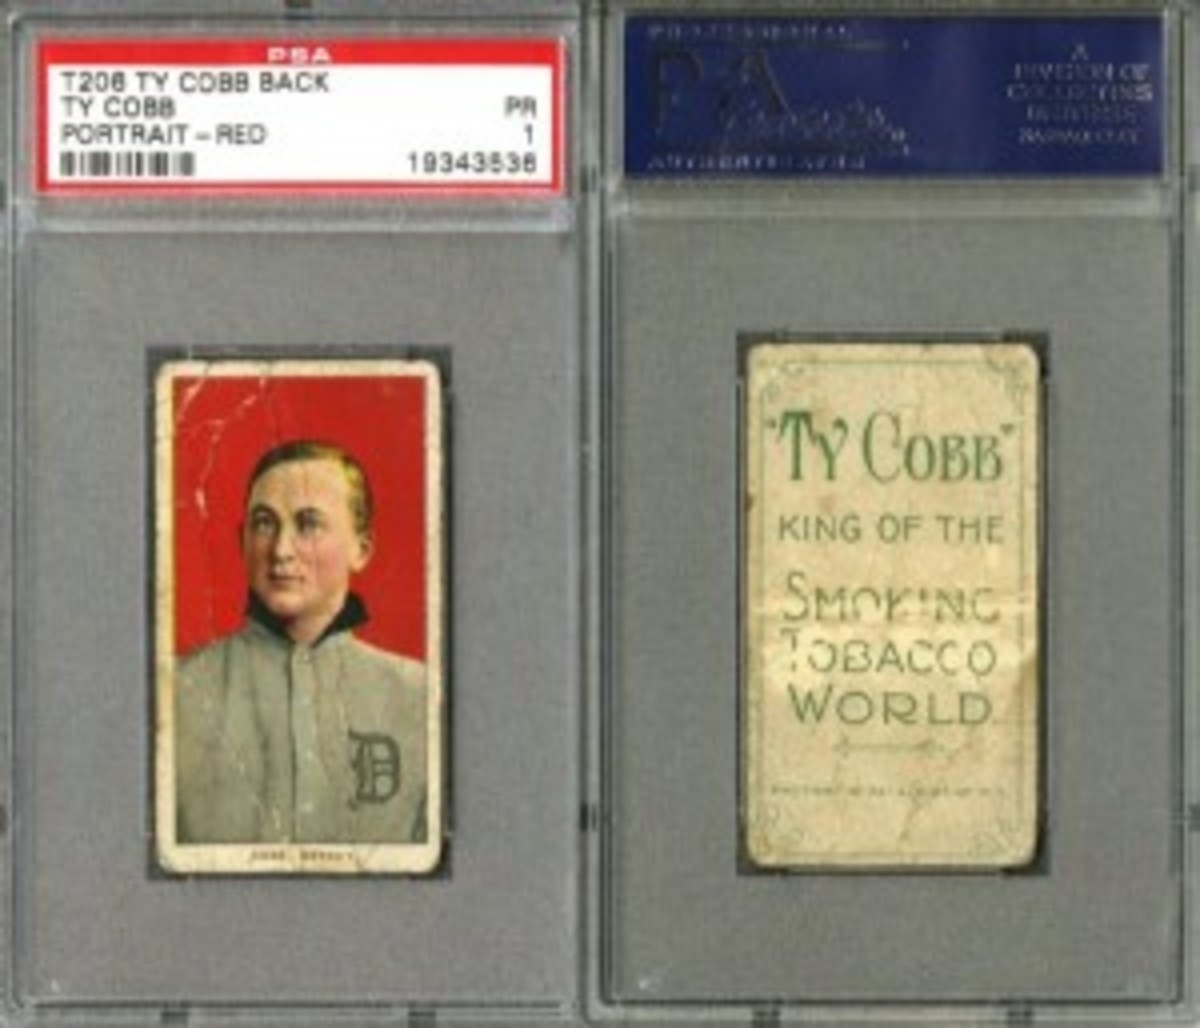 T206 Ty Cobb card with a rare Ty Cobb Tobacco Company back. An estimated 12 known examples are in existence (PSA Graded PR1) - $120,109 - a record for this card in this grade.